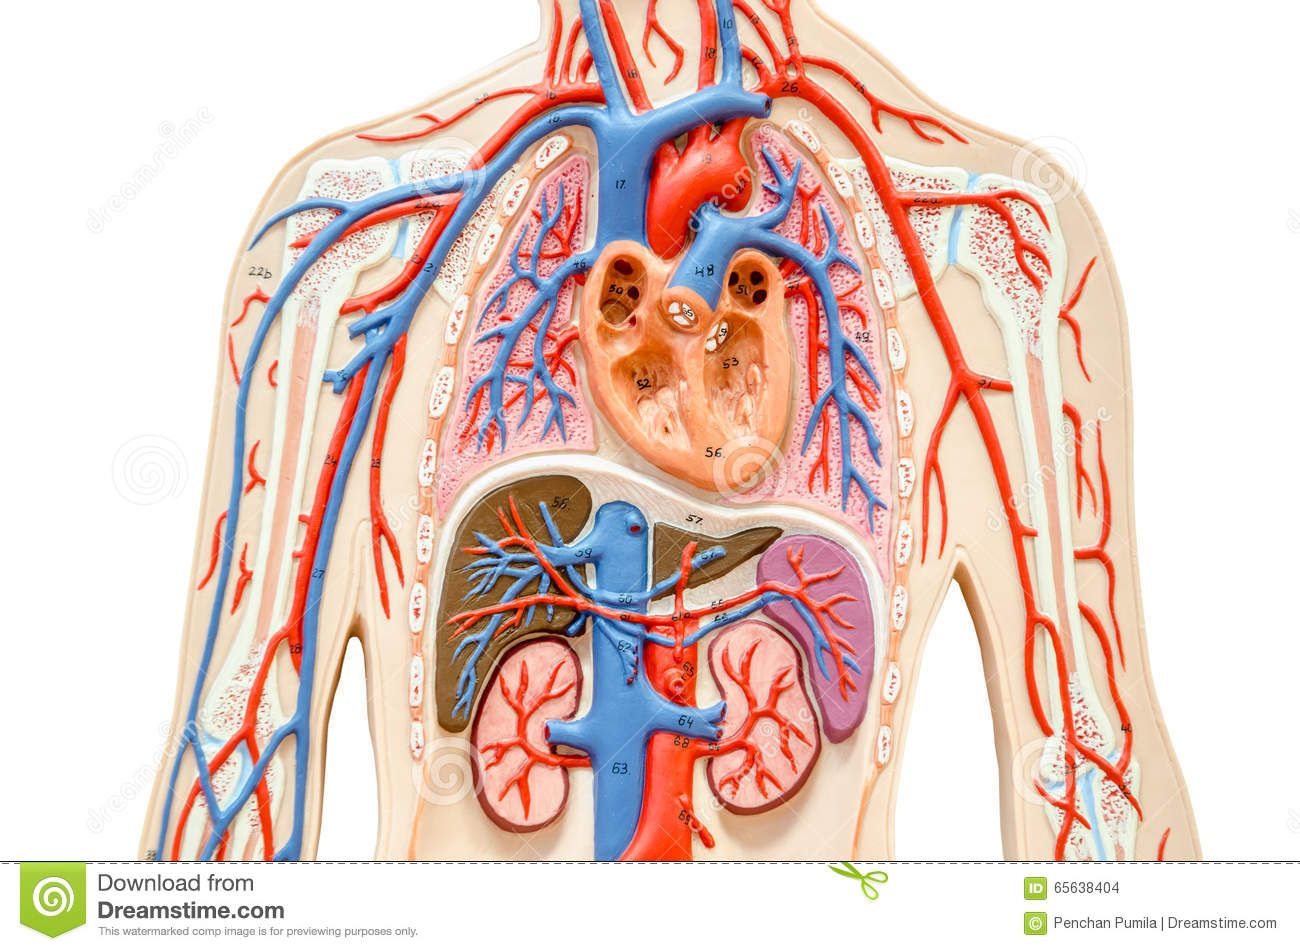 kidney location in humans diagram 2002 chevy cavalier wiring image result for heart kidneys lungs liver body